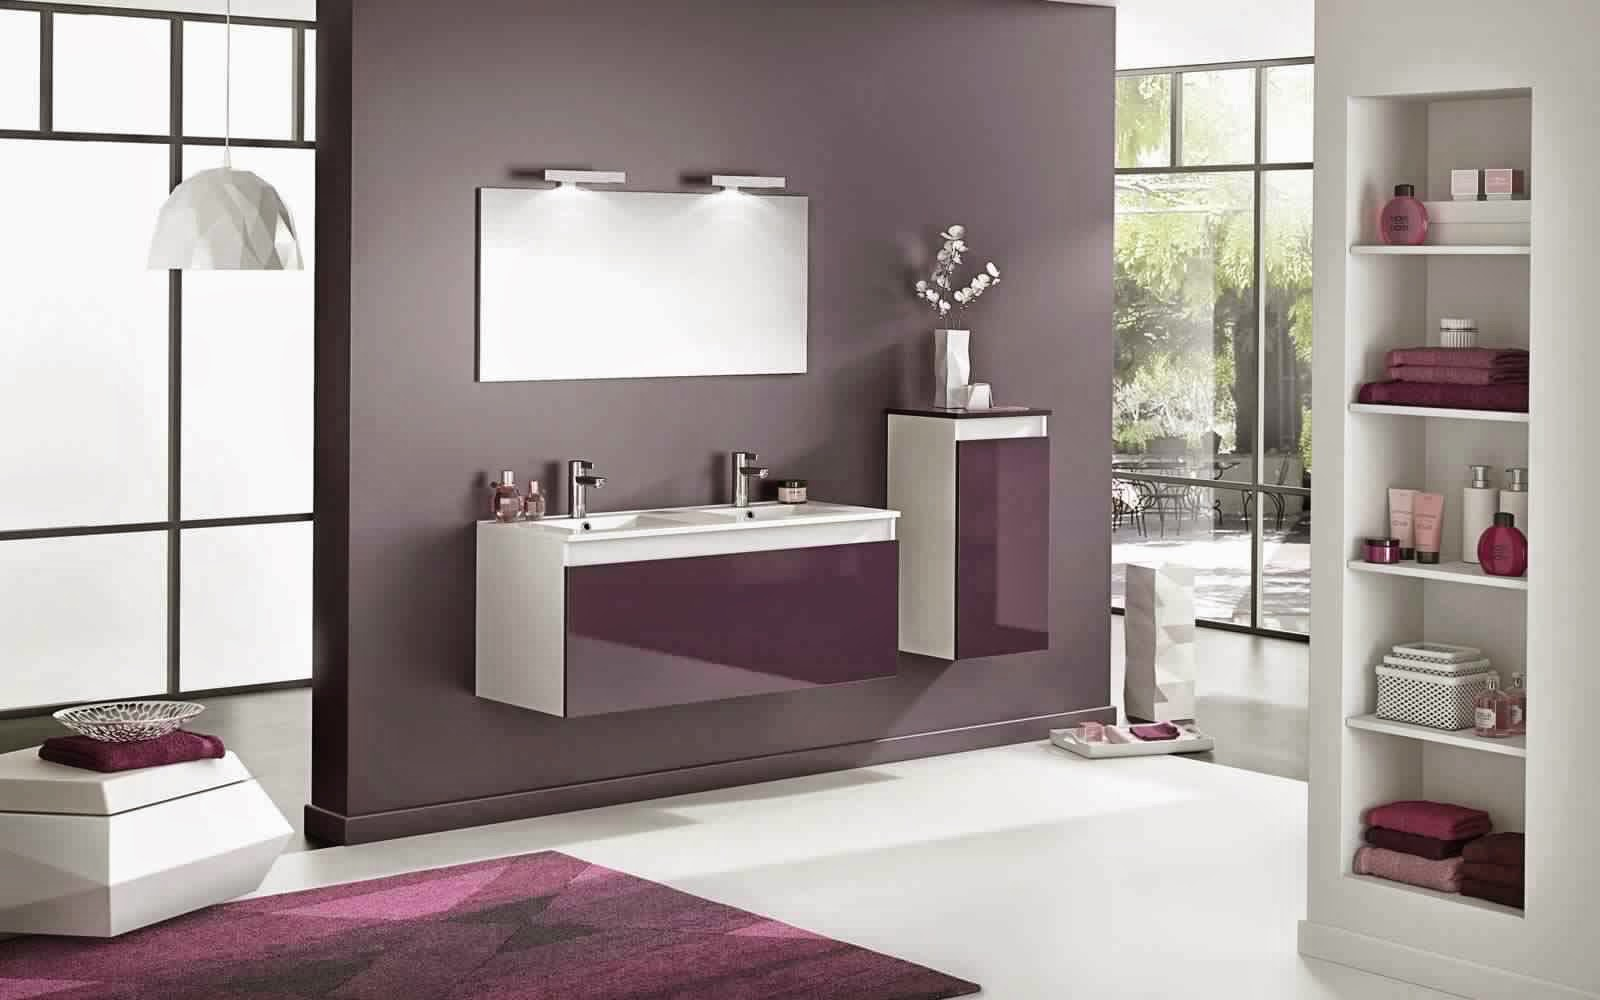 salle de bain vitr am nagement installation lionel. Black Bedroom Furniture Sets. Home Design Ideas